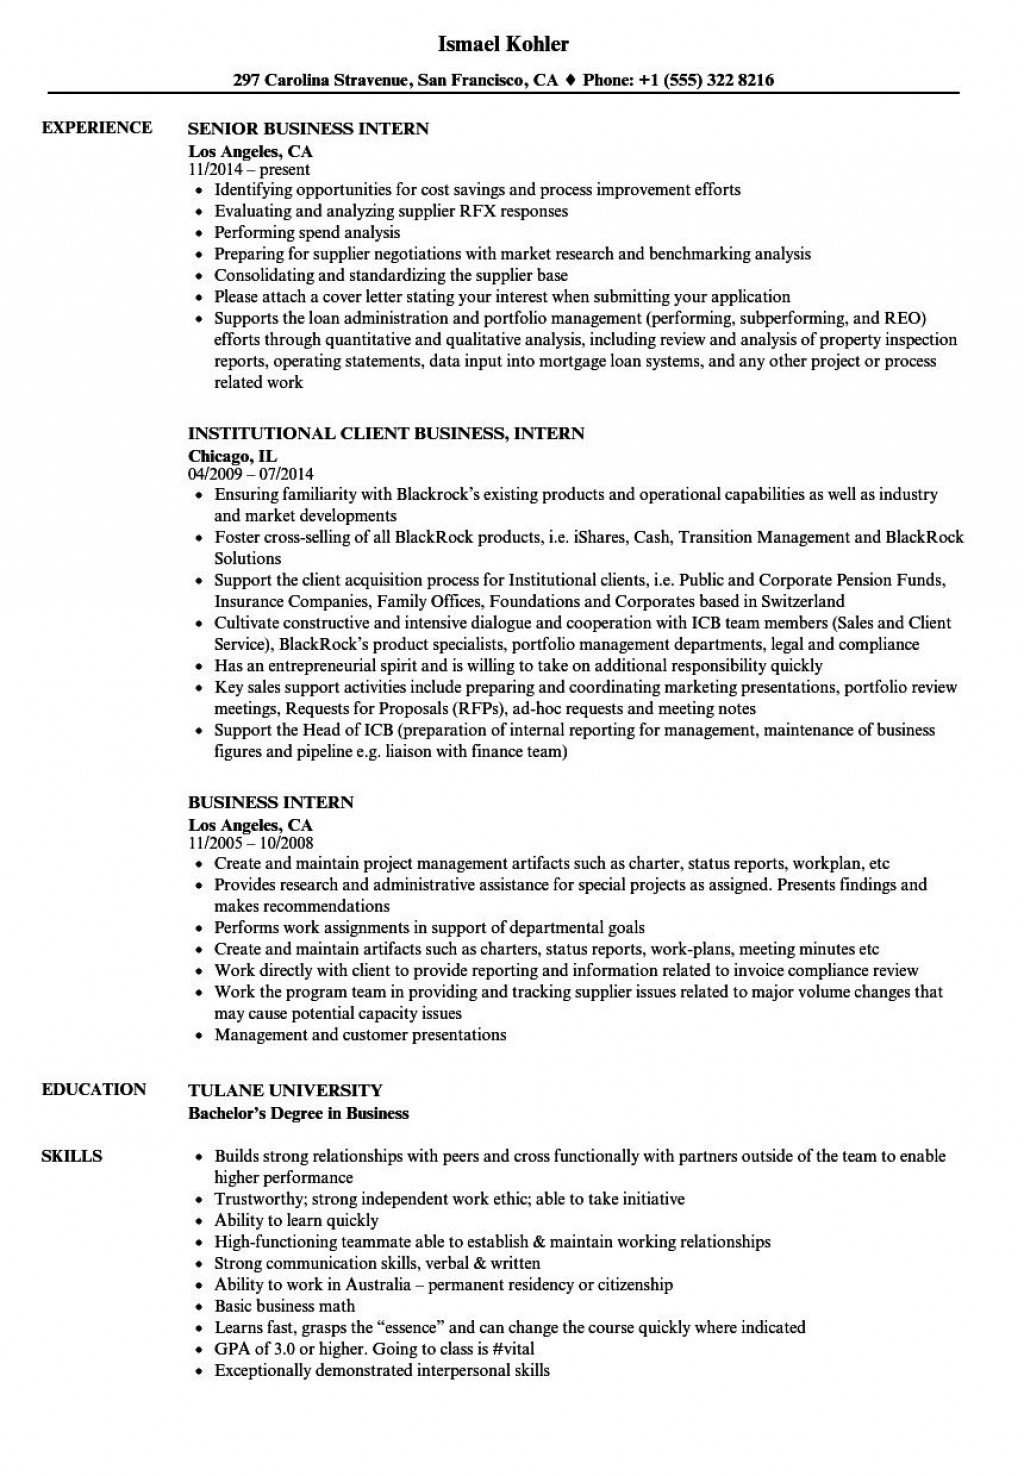 001 Fearsome Resume Template For Intern Concept  Interns Internship In Engineering Law ExampleLarge